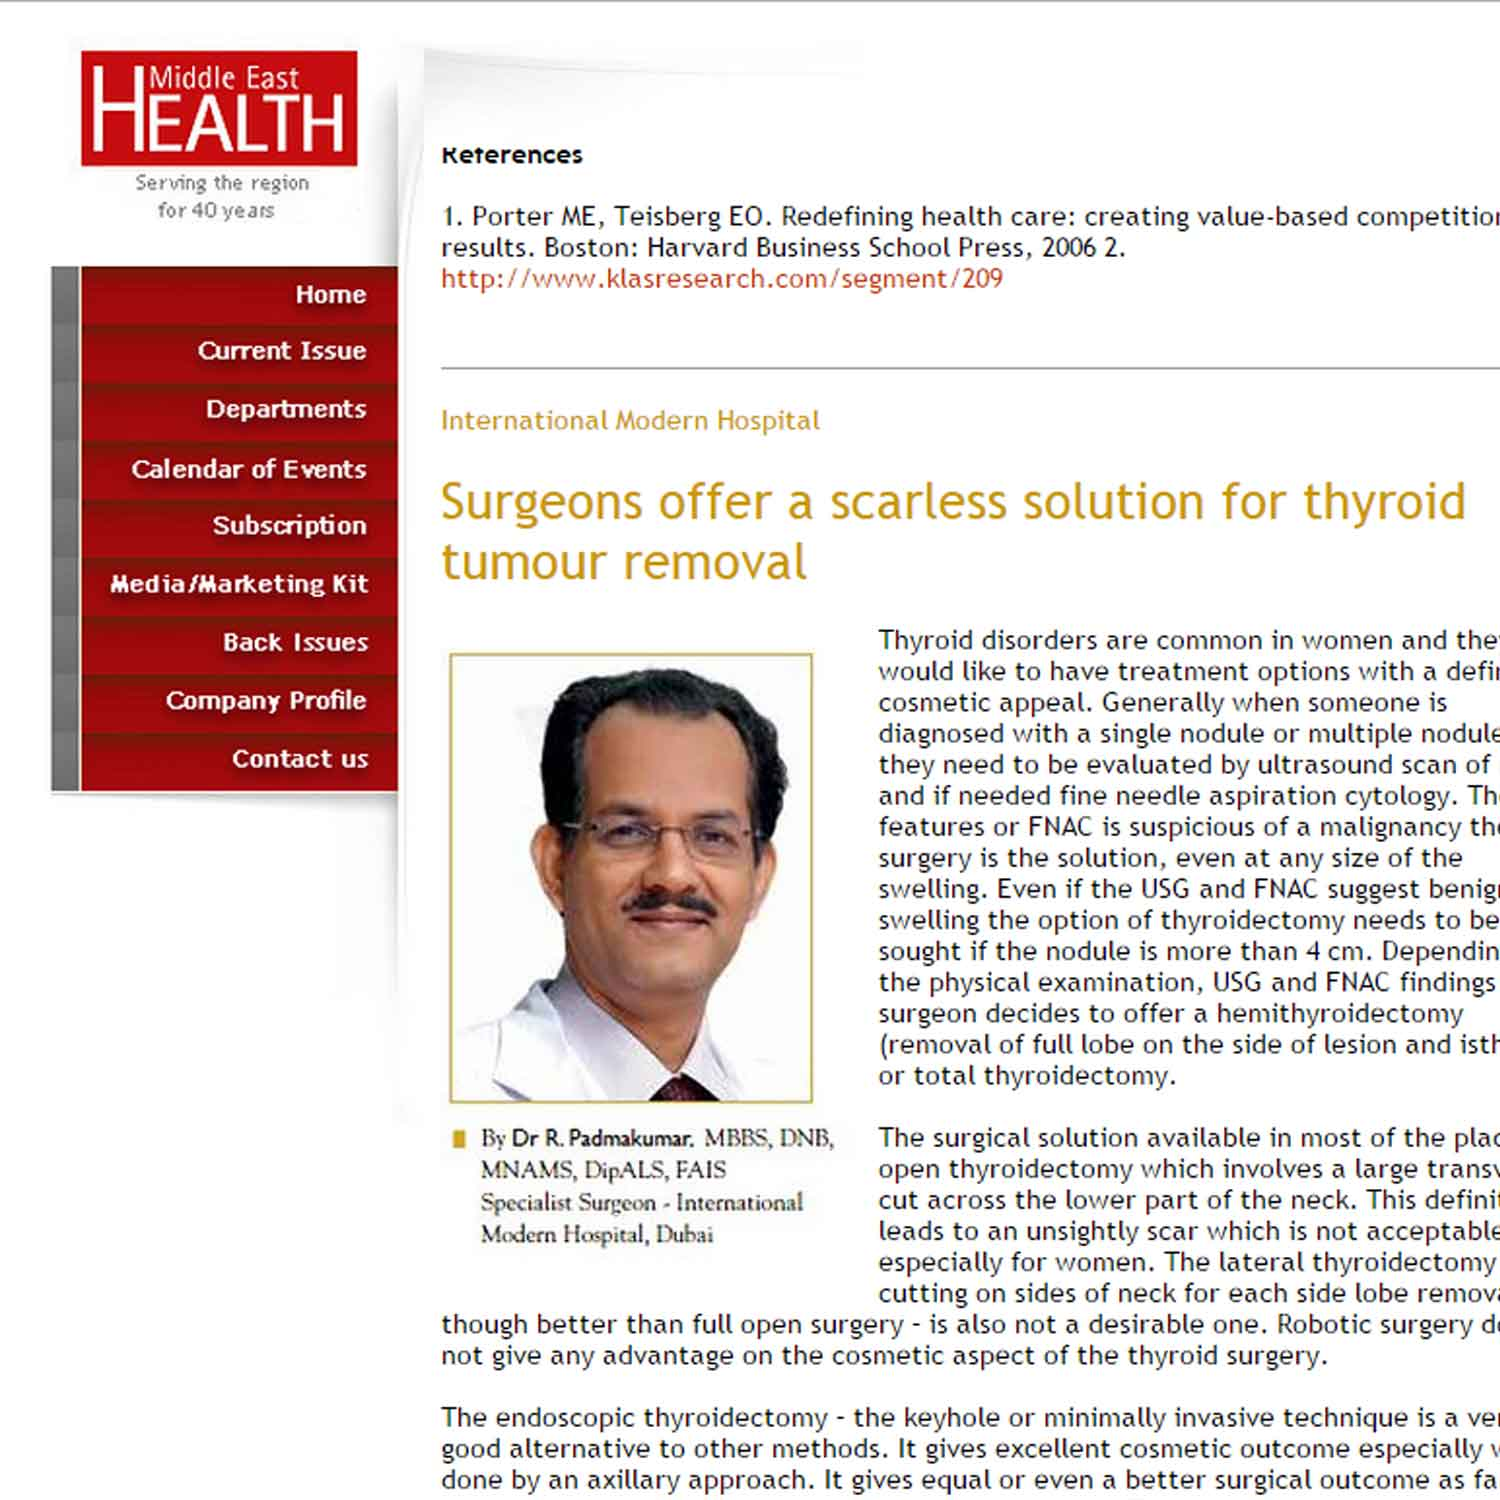 Surgeons offer a scarless solution for thyroid tumour removal